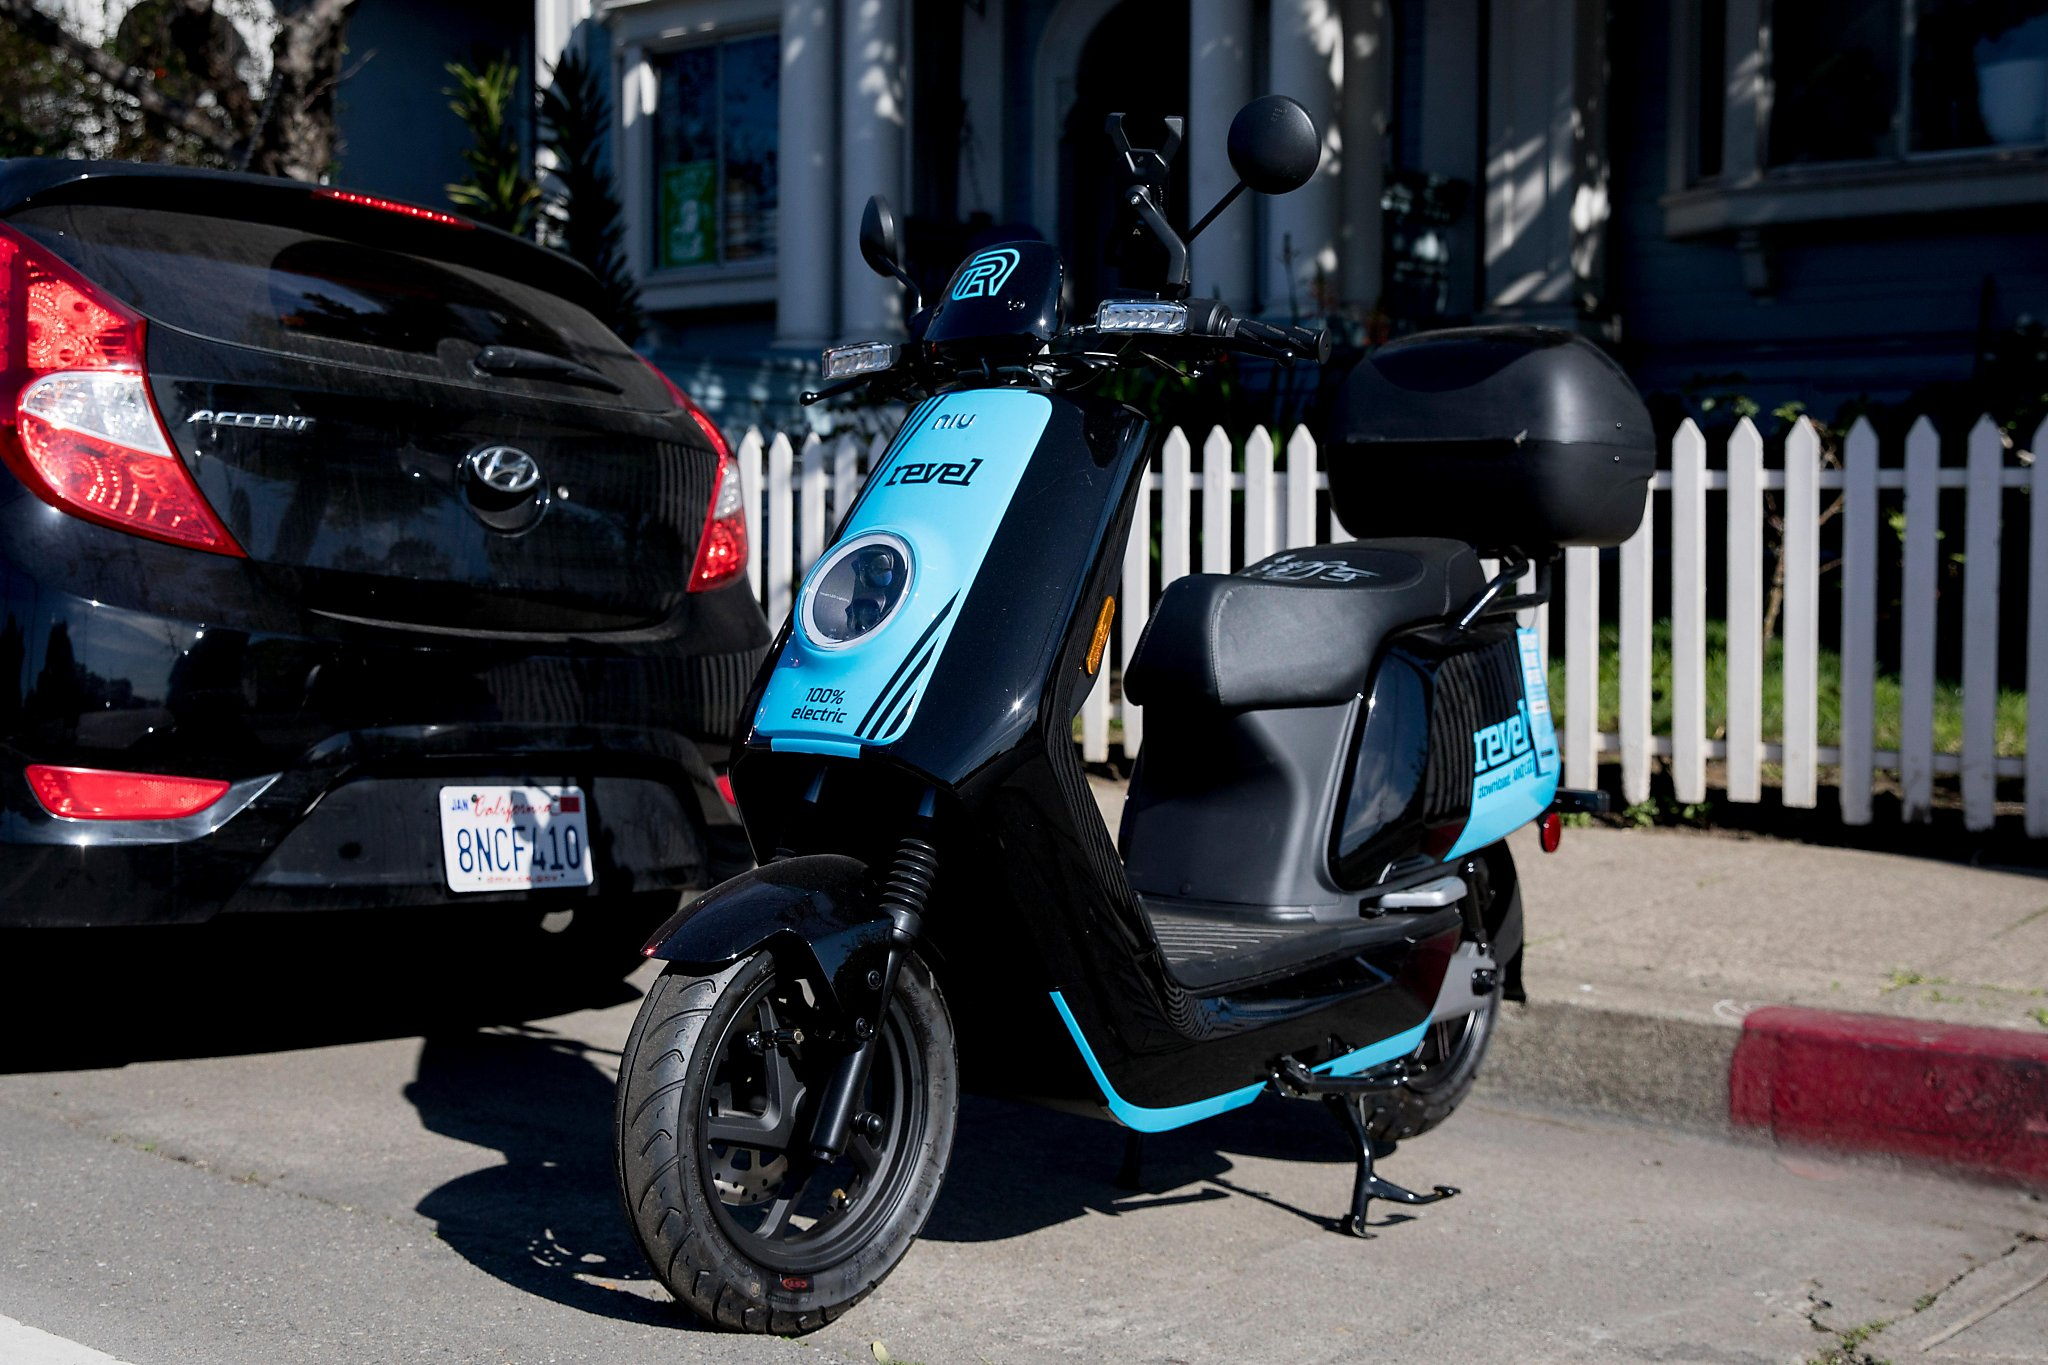 Oakland's mopeds are here - and boy are they being noticed